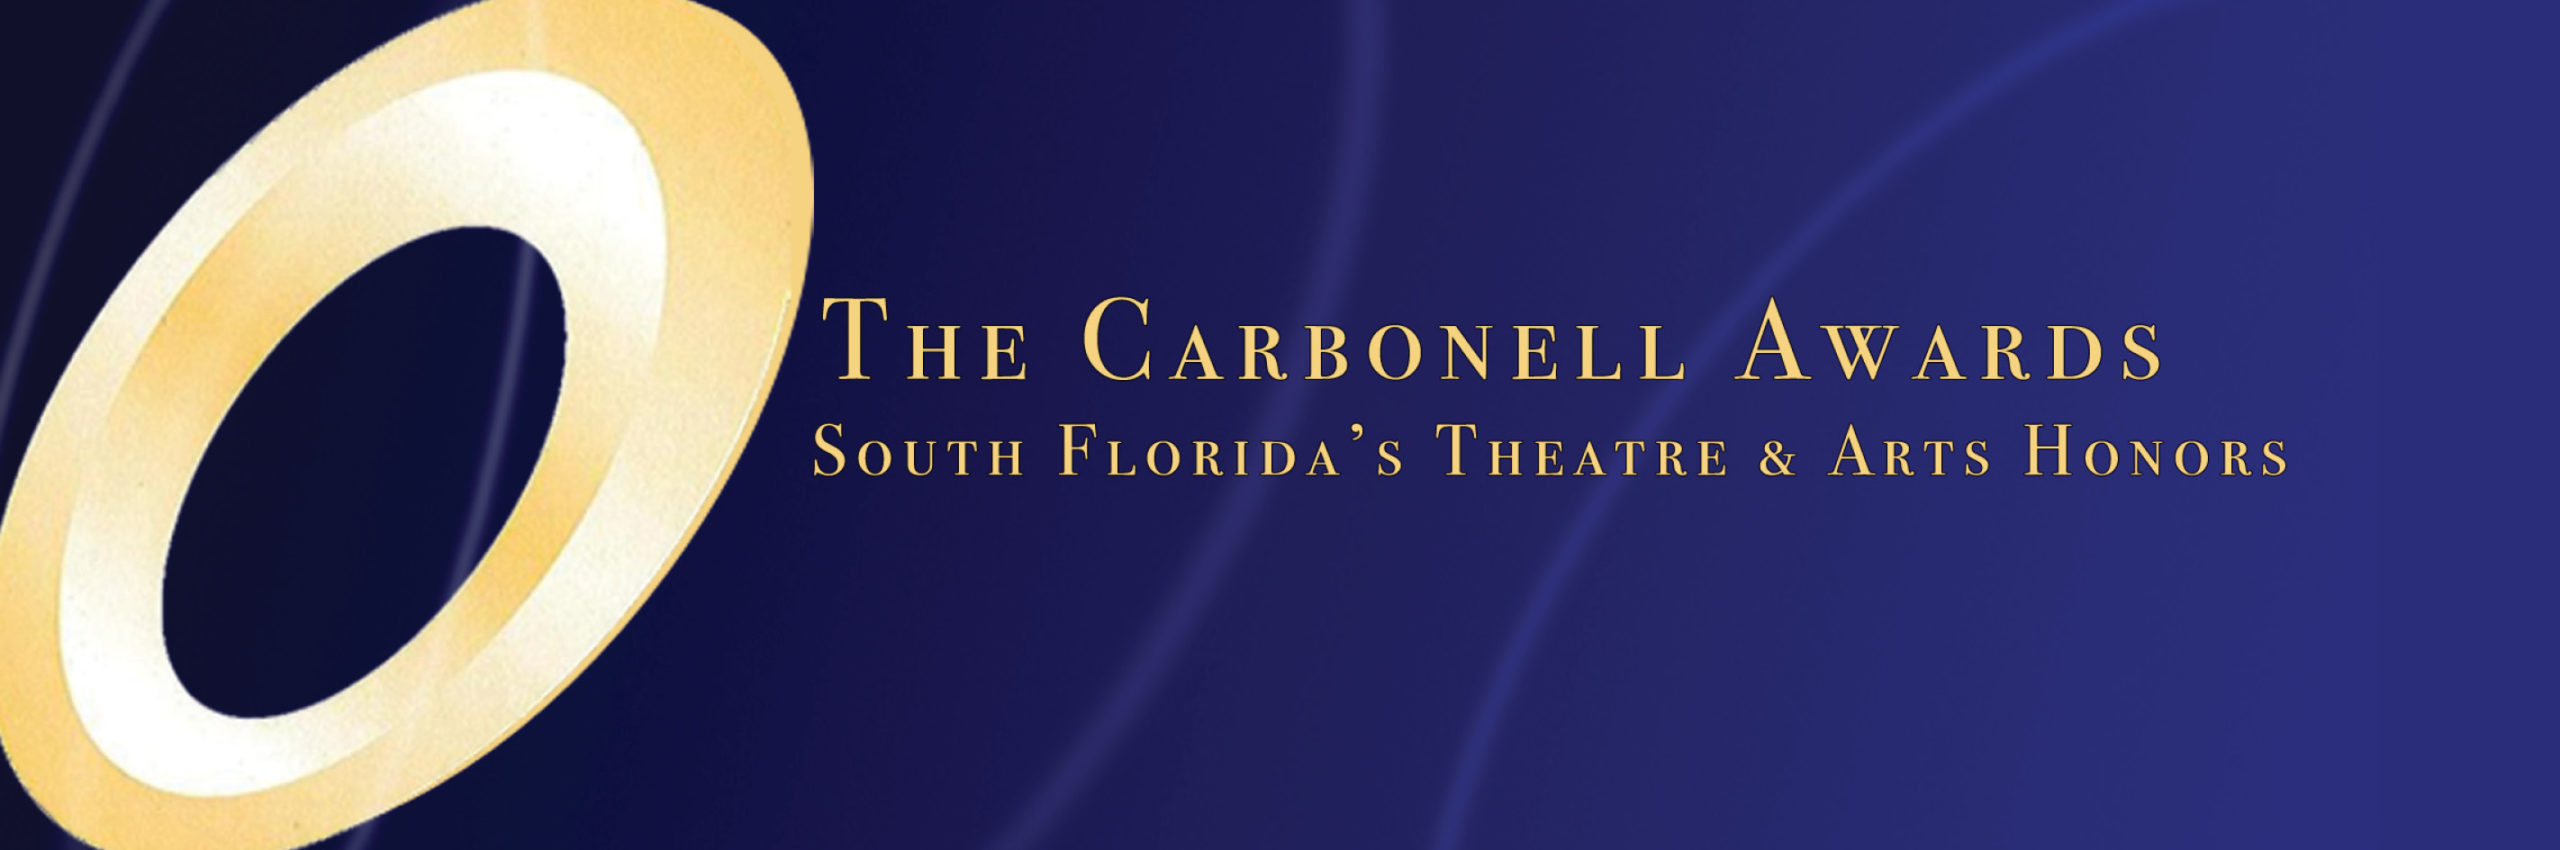 The Carbonell Awards Announces Winners of the 2020 Jack Zink Memorial Scholarships